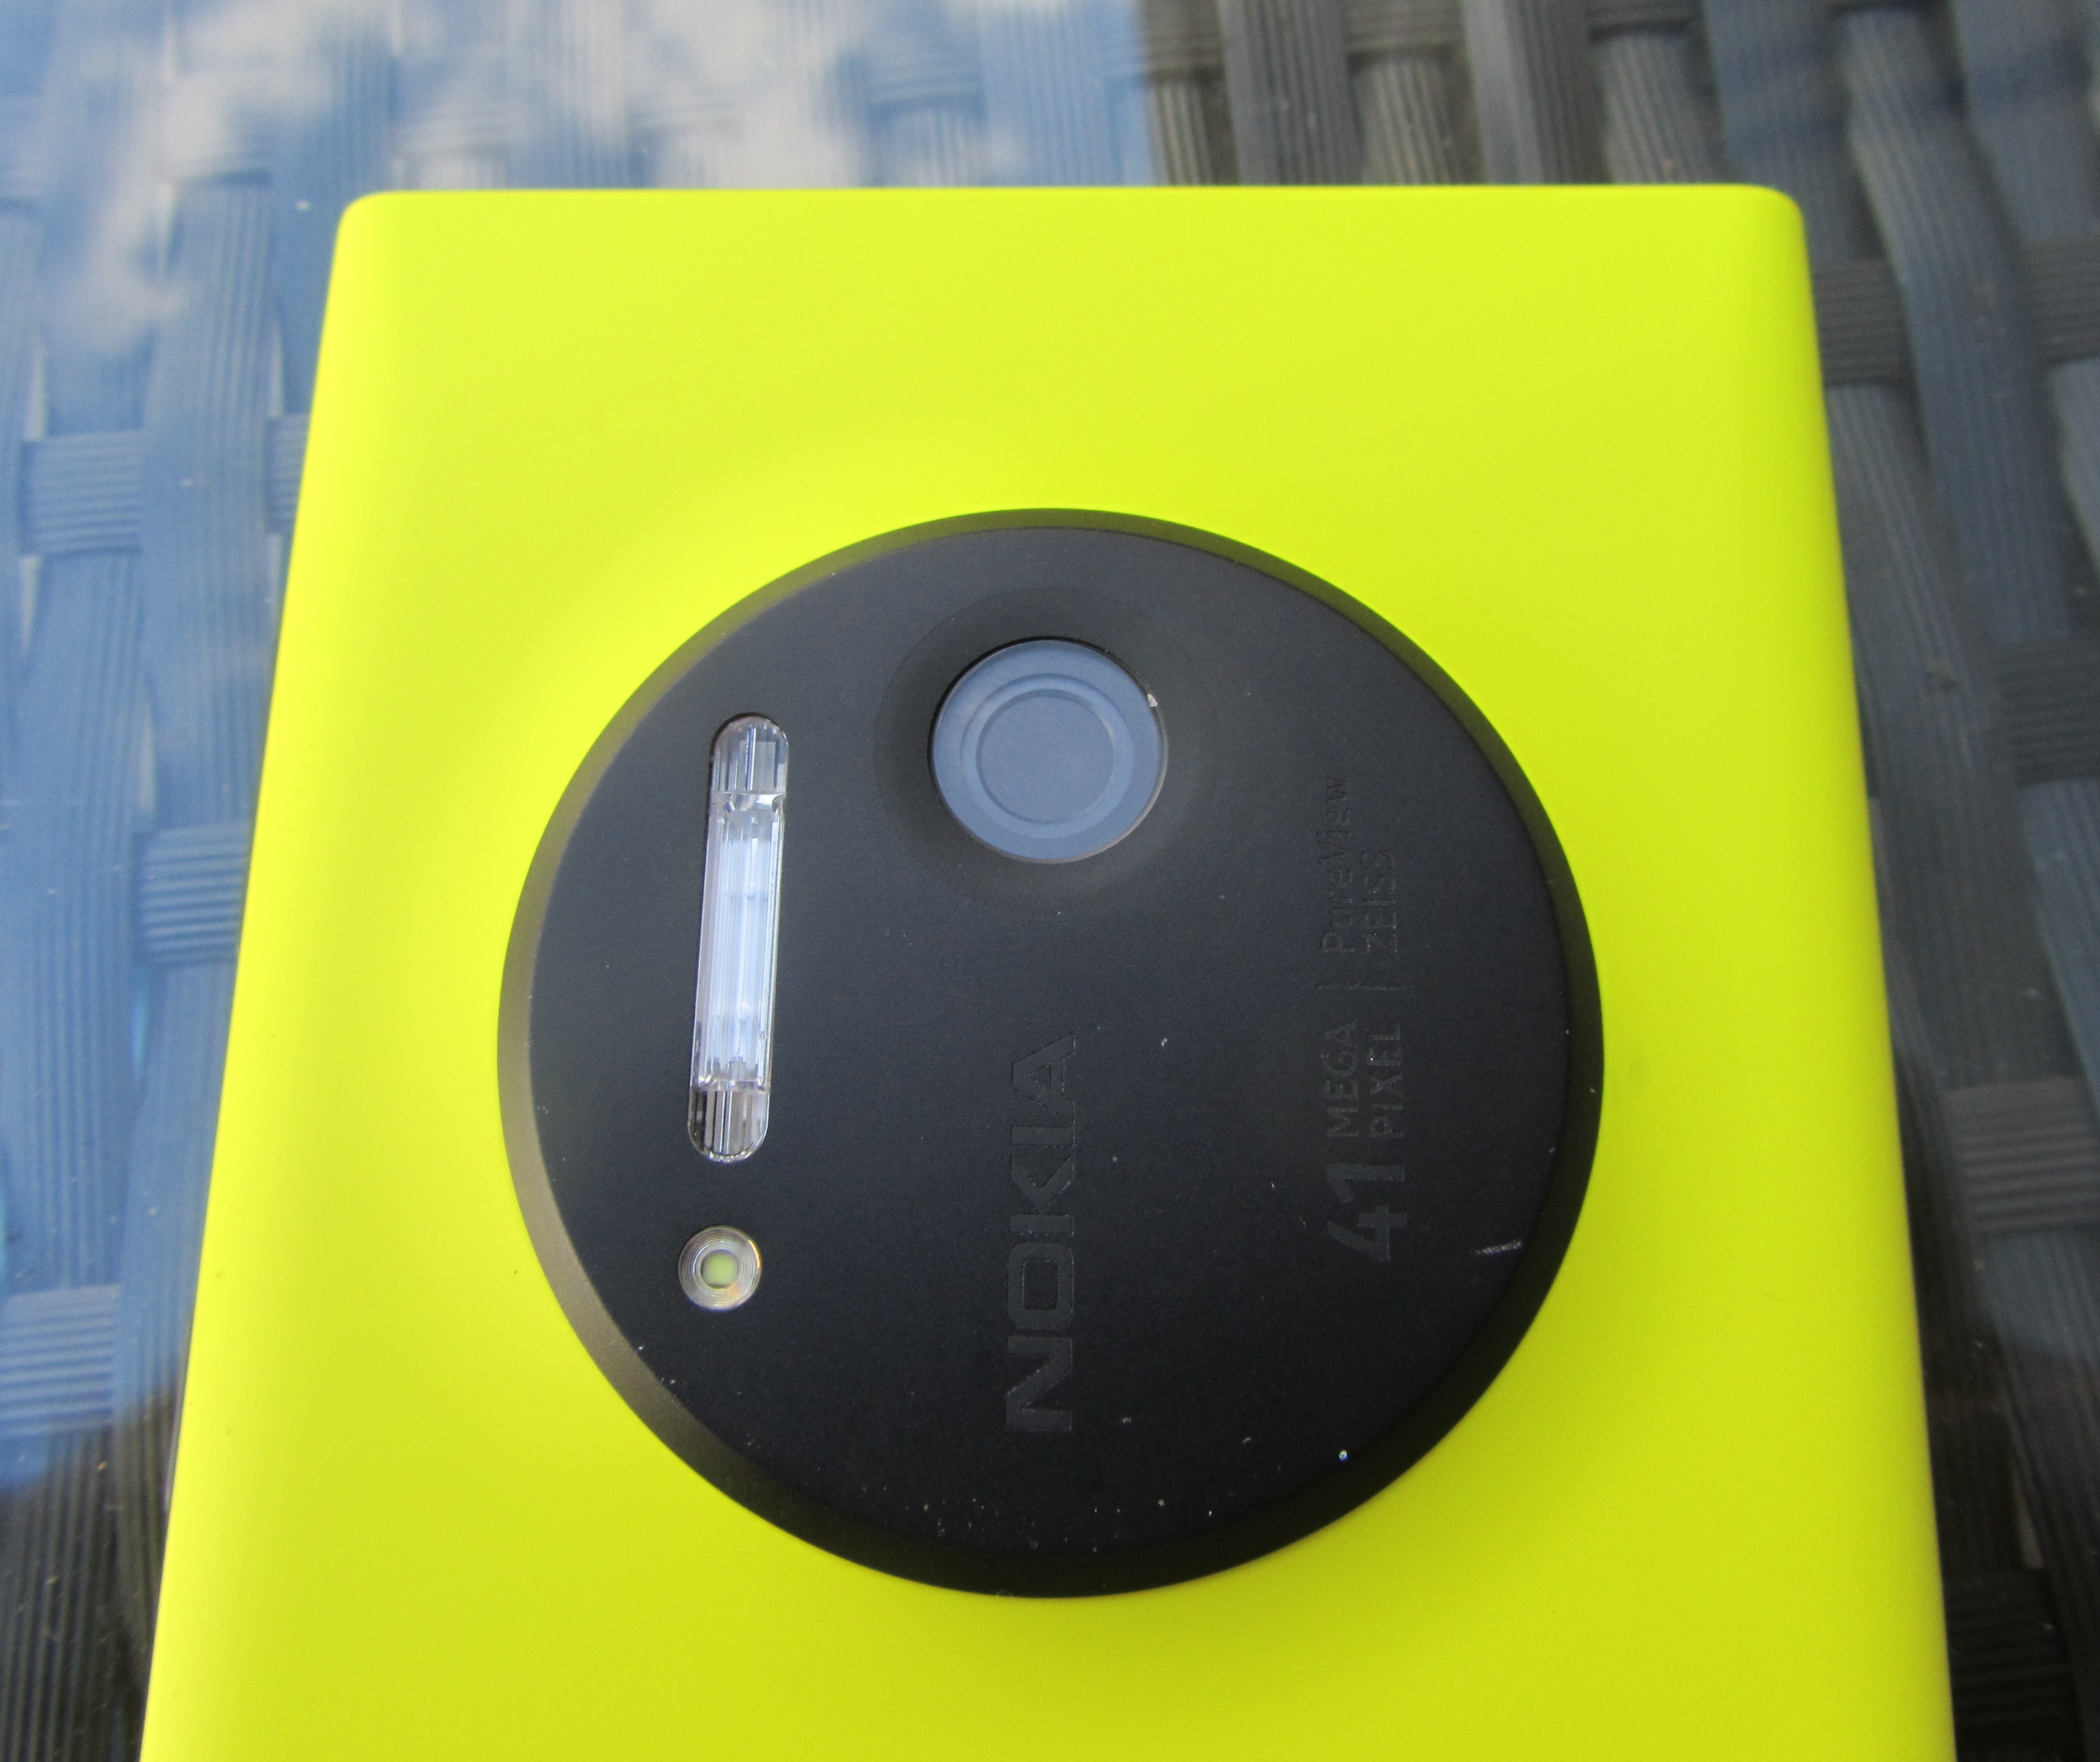 1020 camera Nokia Lumia 1020 review: The best camera phone, but not the best smartphone